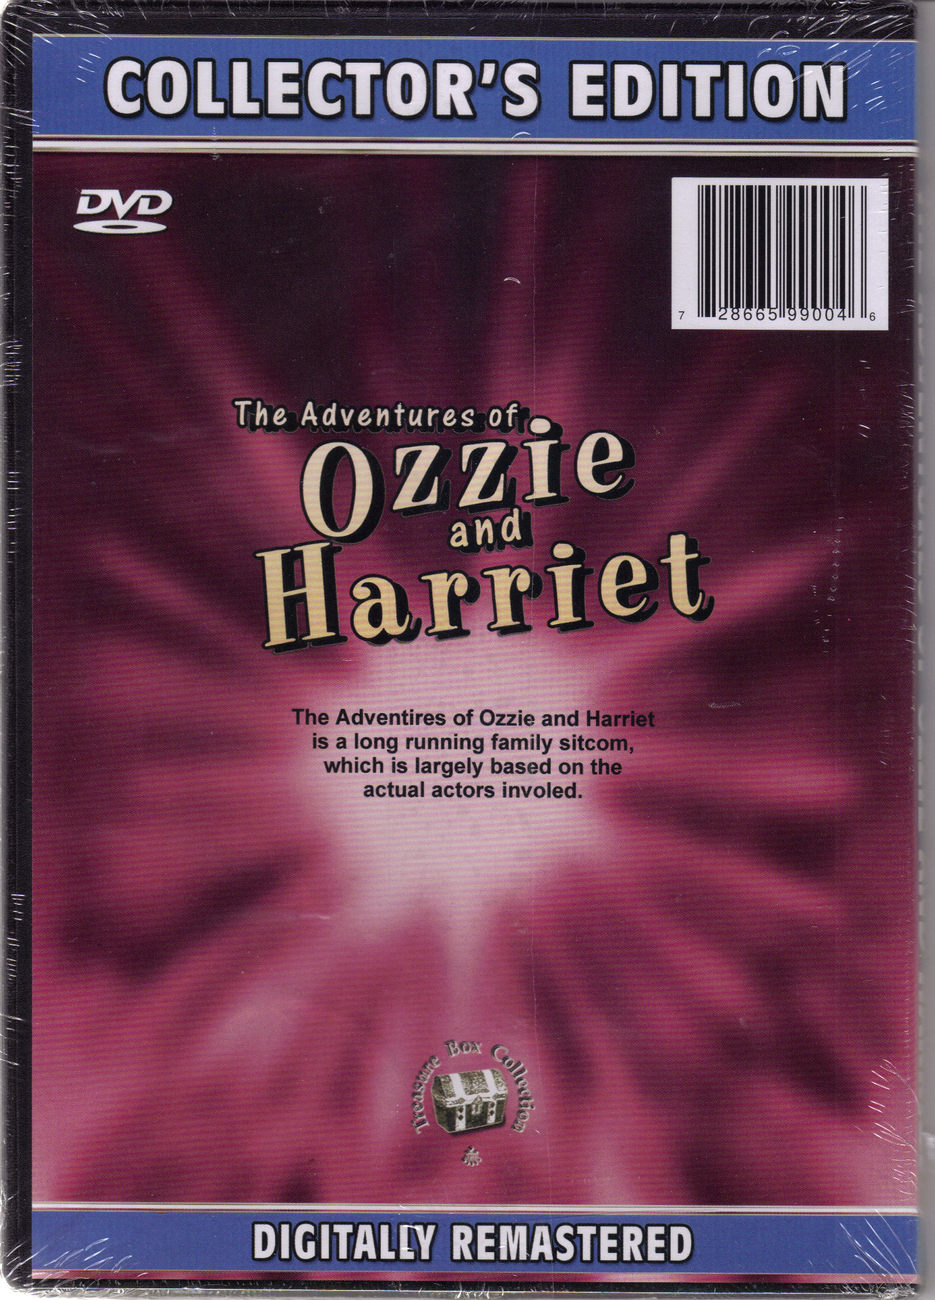 OZZIE and HARRIET DVD Collector's Edition